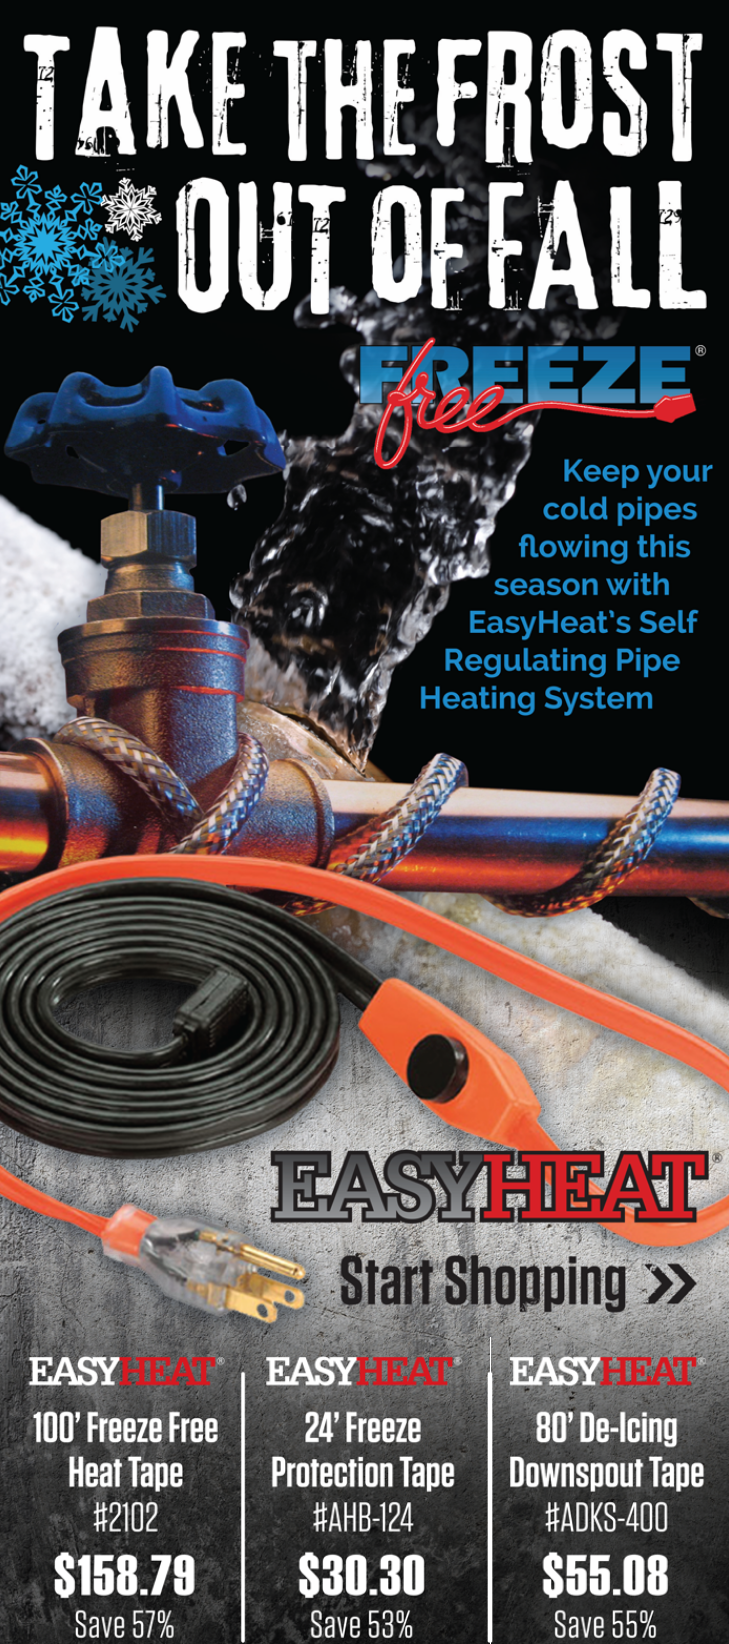 Keep your cold pipes flowing this season with EasyHeat's self regulating pipe heating system.